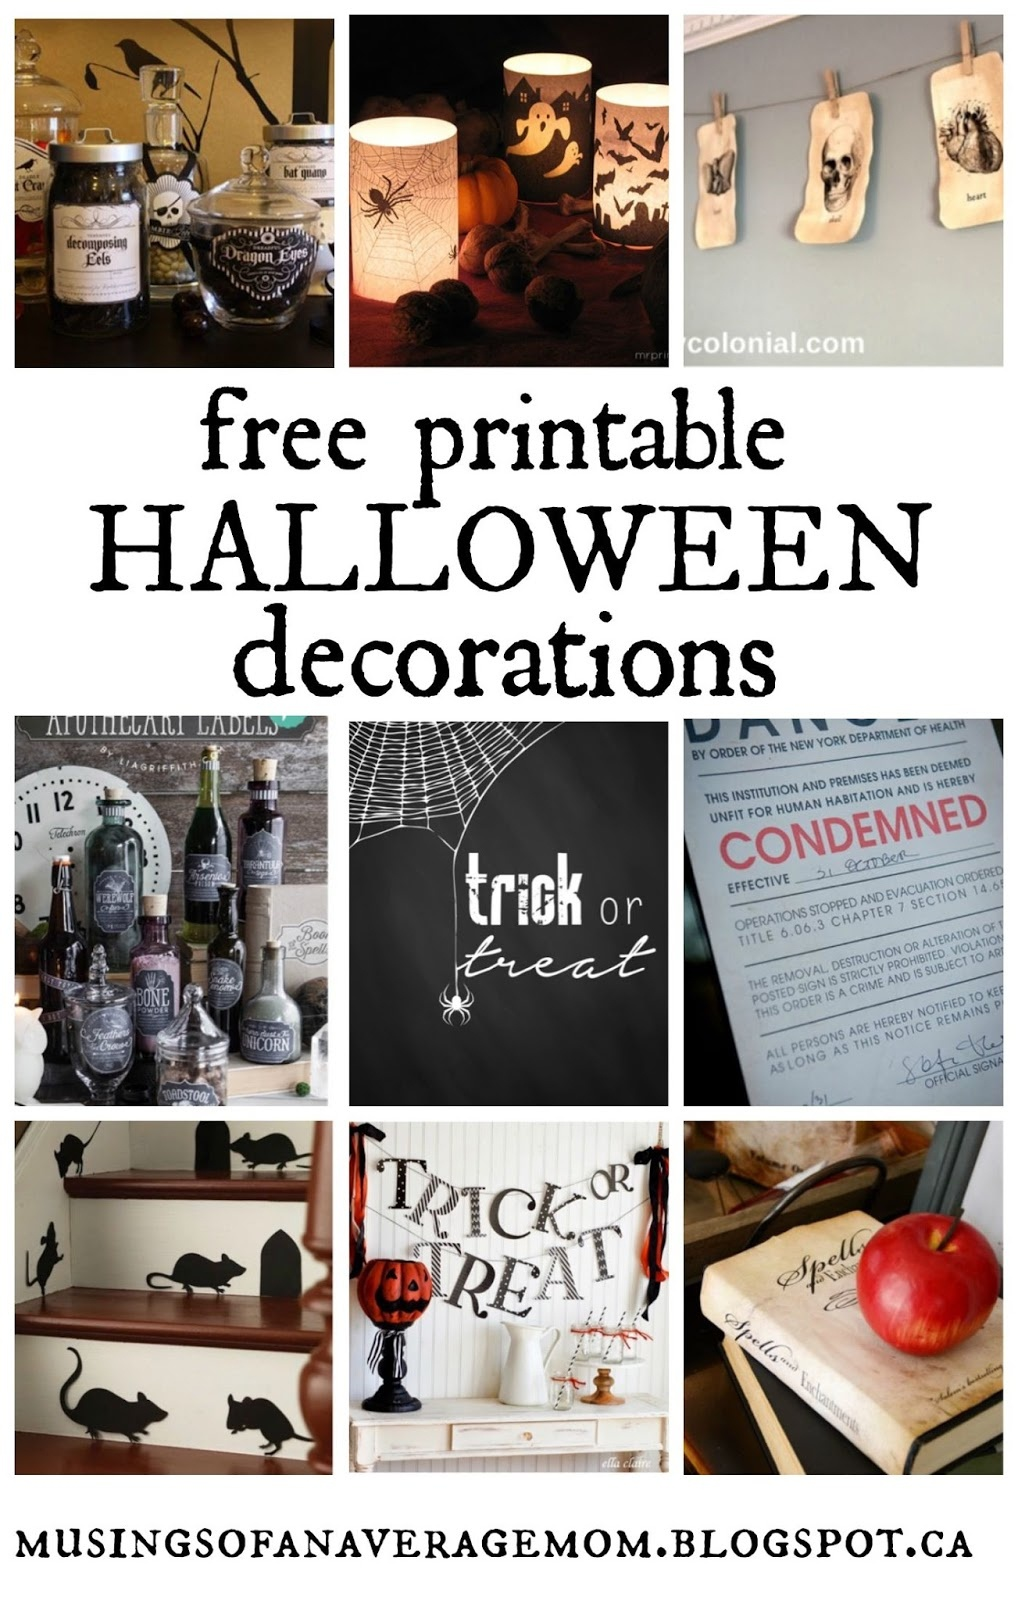 Musings Of An Average Mom: Free Printable Halloween Decorations - Free Printable Halloween Decorations